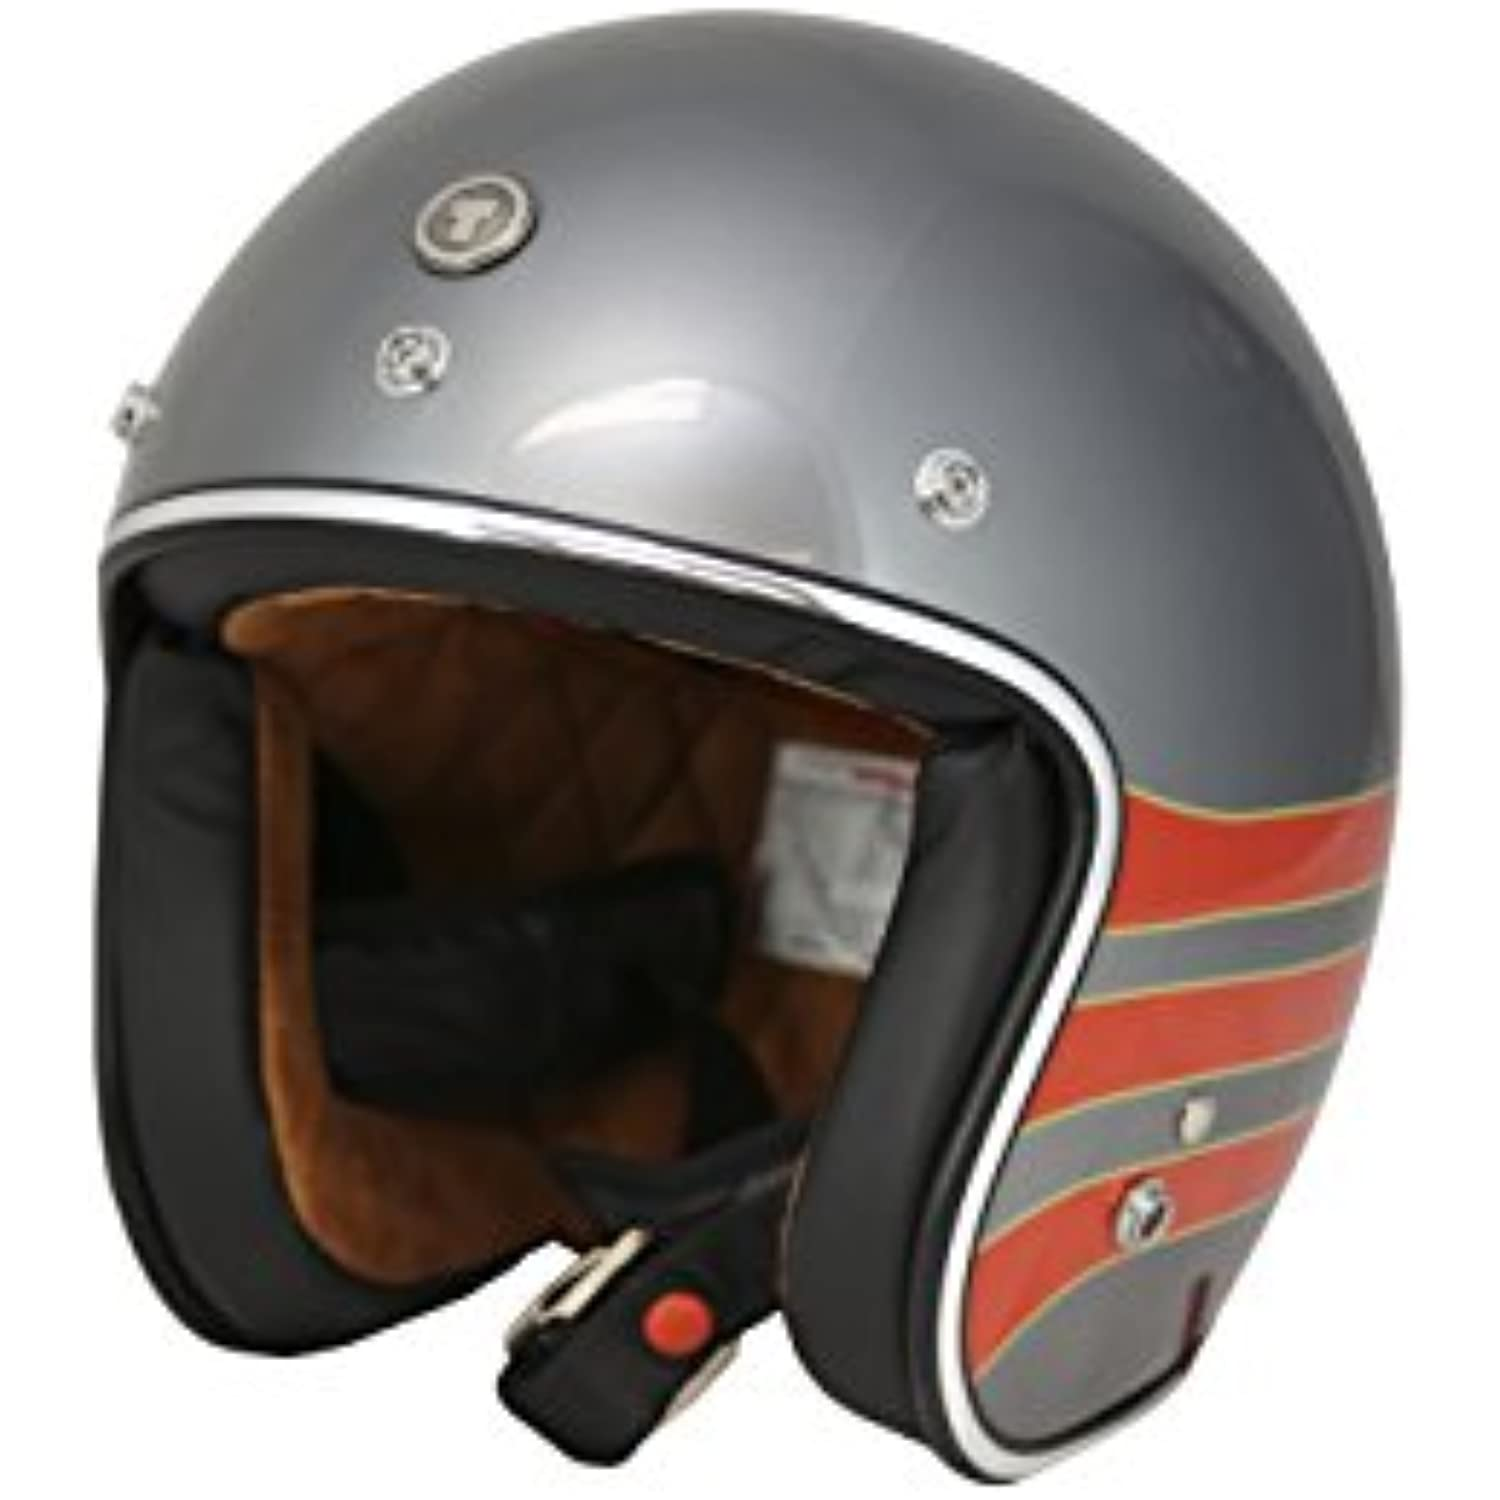 TORC T50 Route 66 3/4 Open Face Helmet with 'Fastlane' Graphic (Metallic Wine, XX-Large)